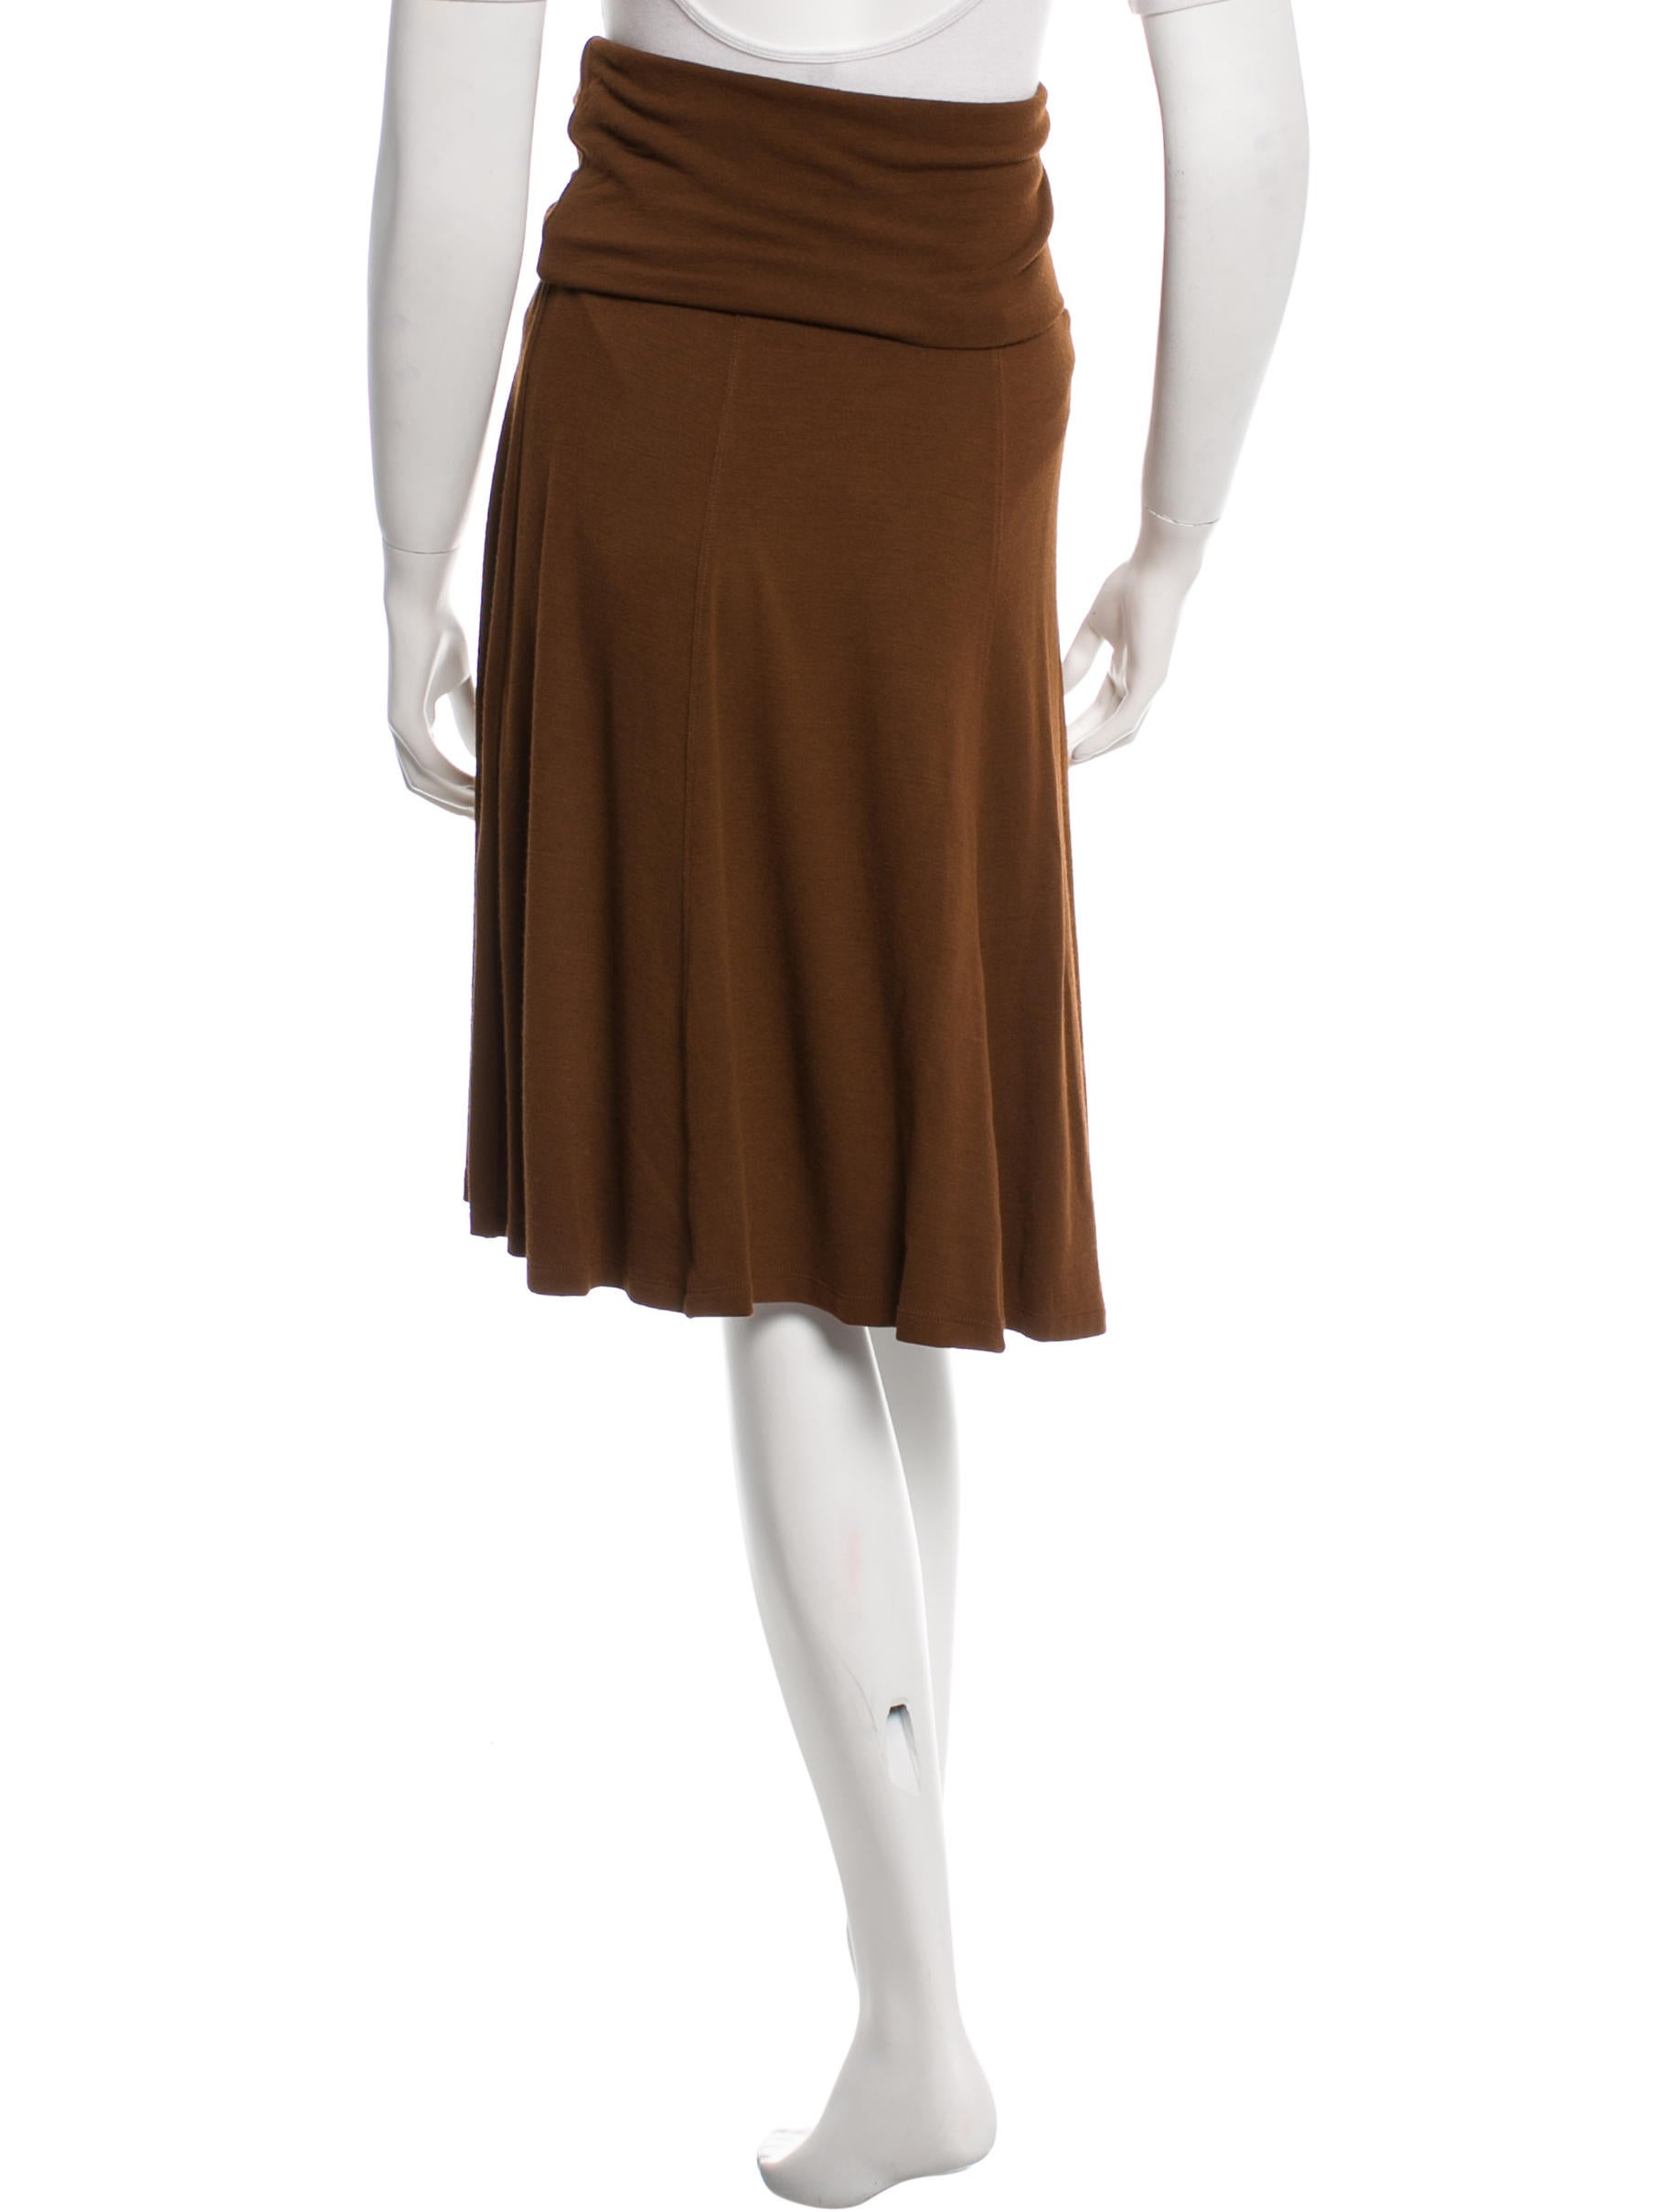 plein sud brown knee length skirt w tags clothing